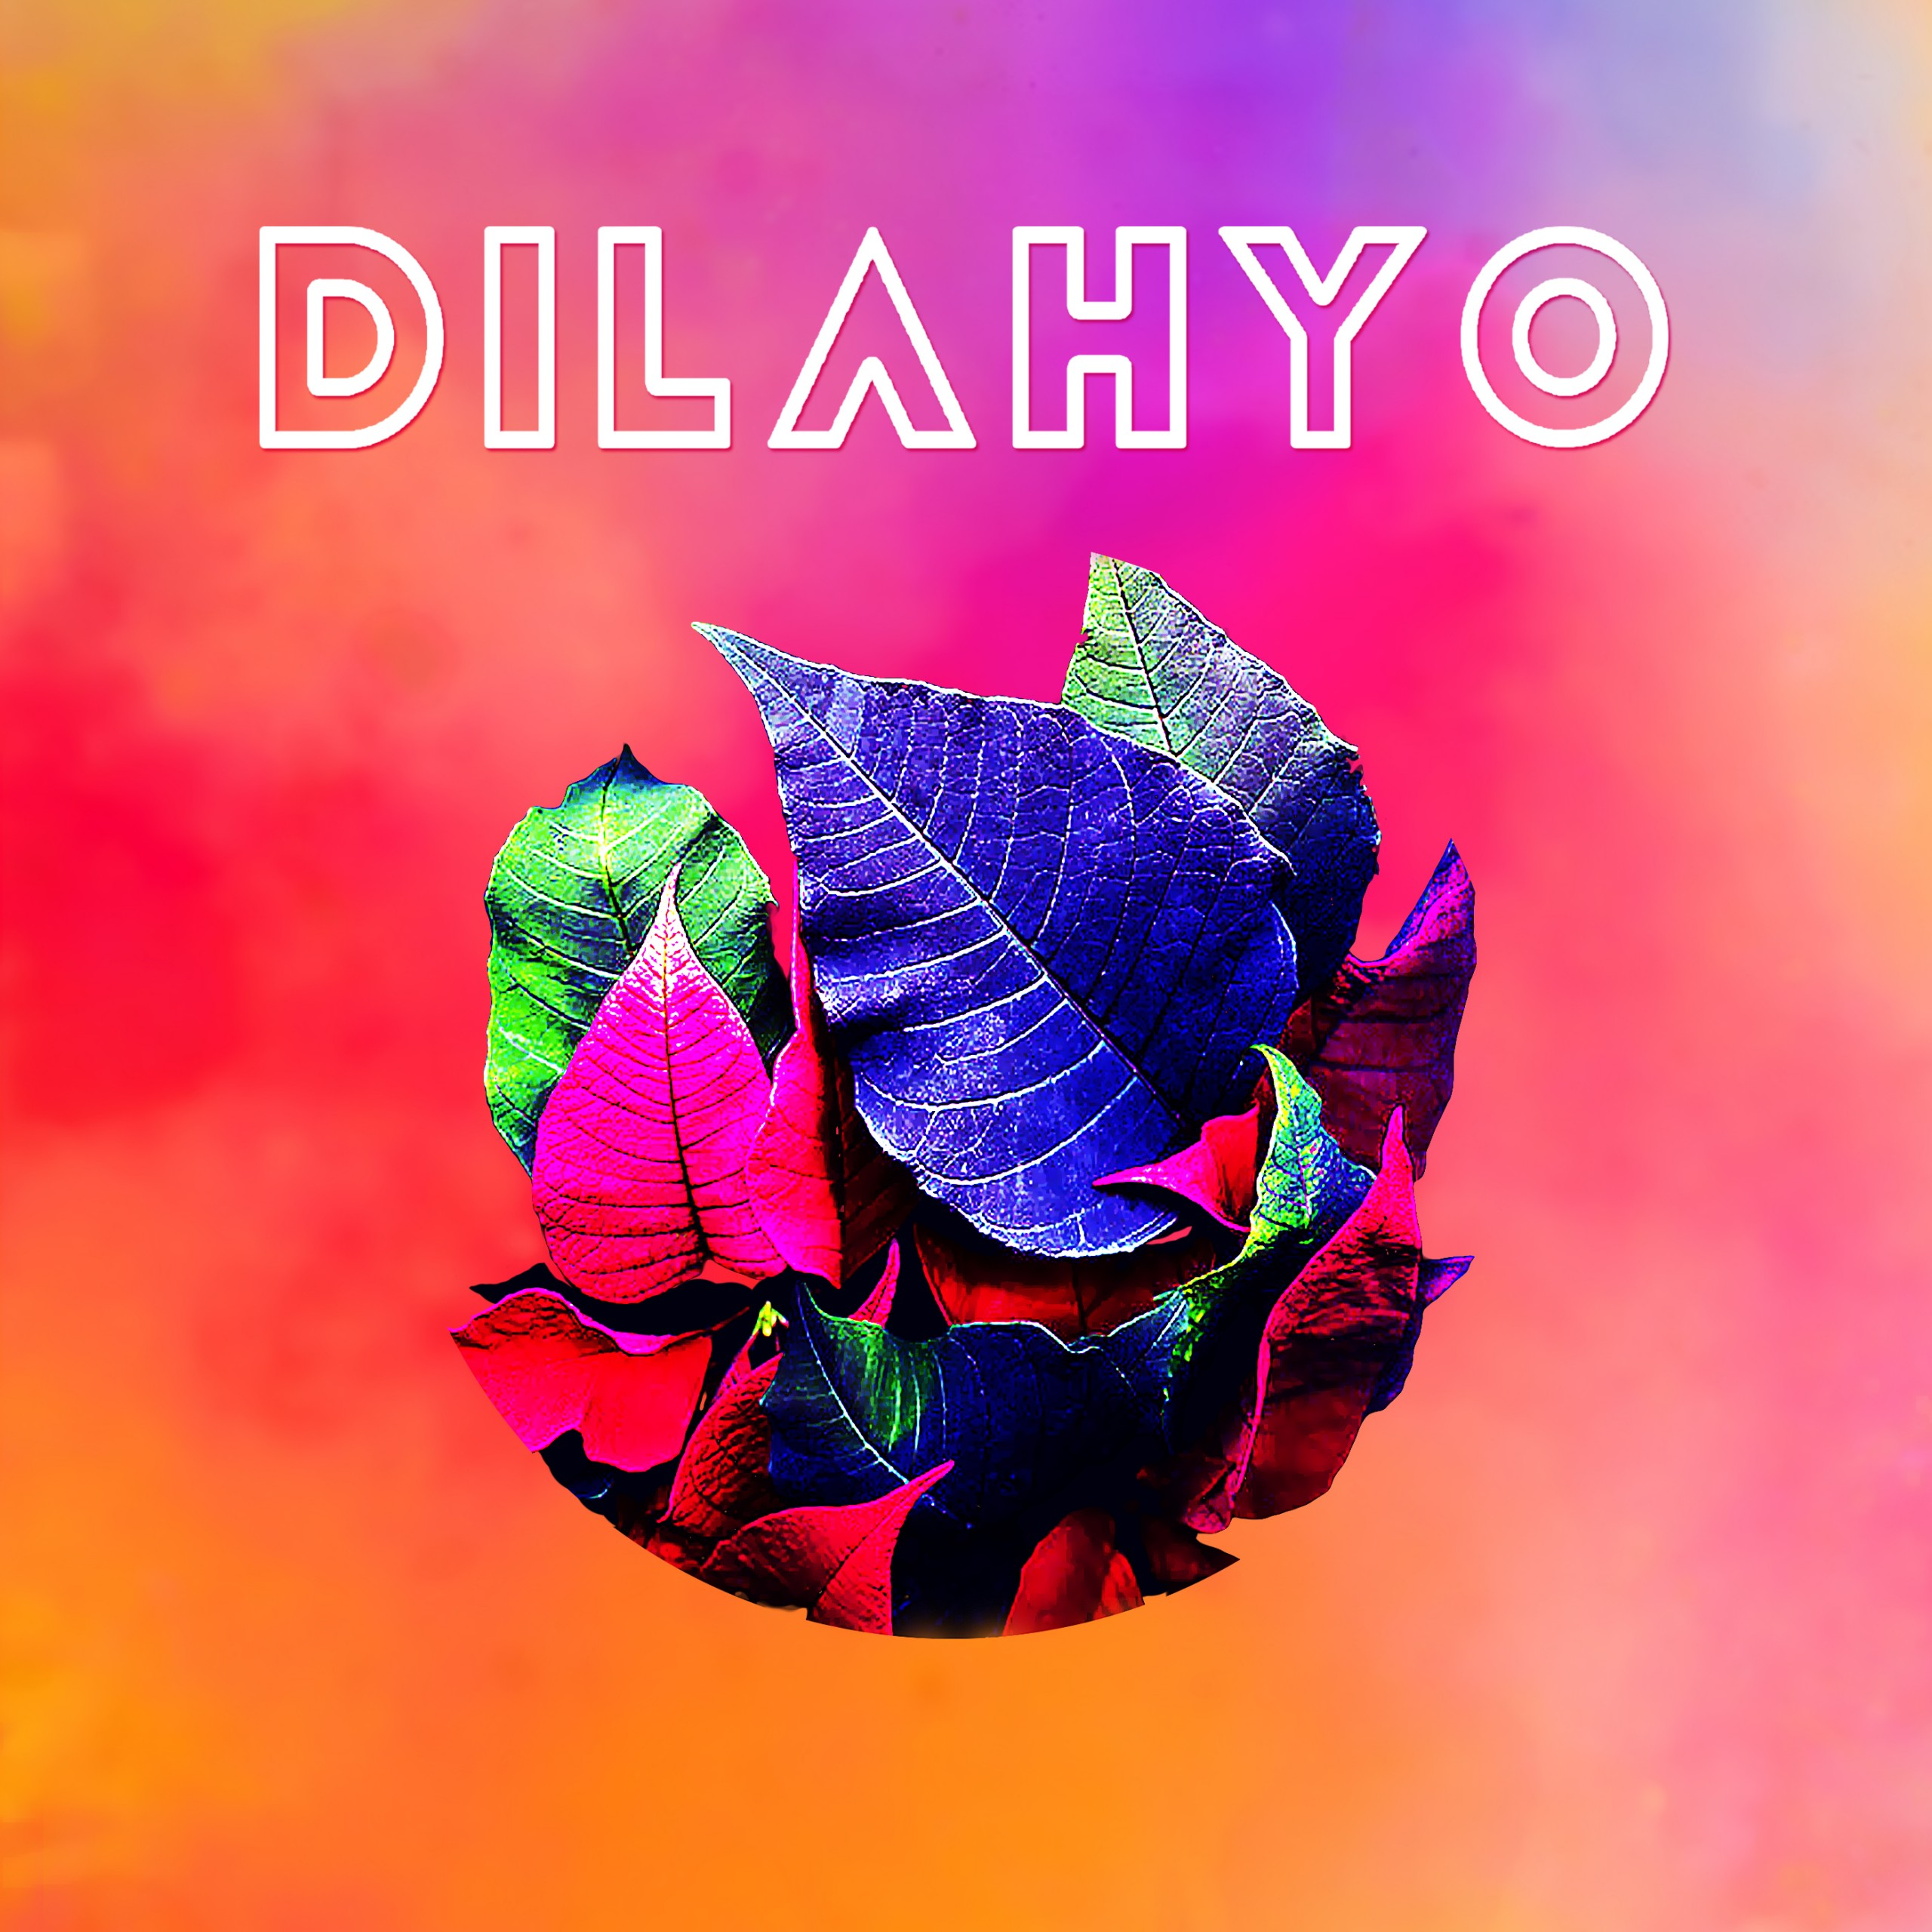 interview dilahyo groupe pop rock